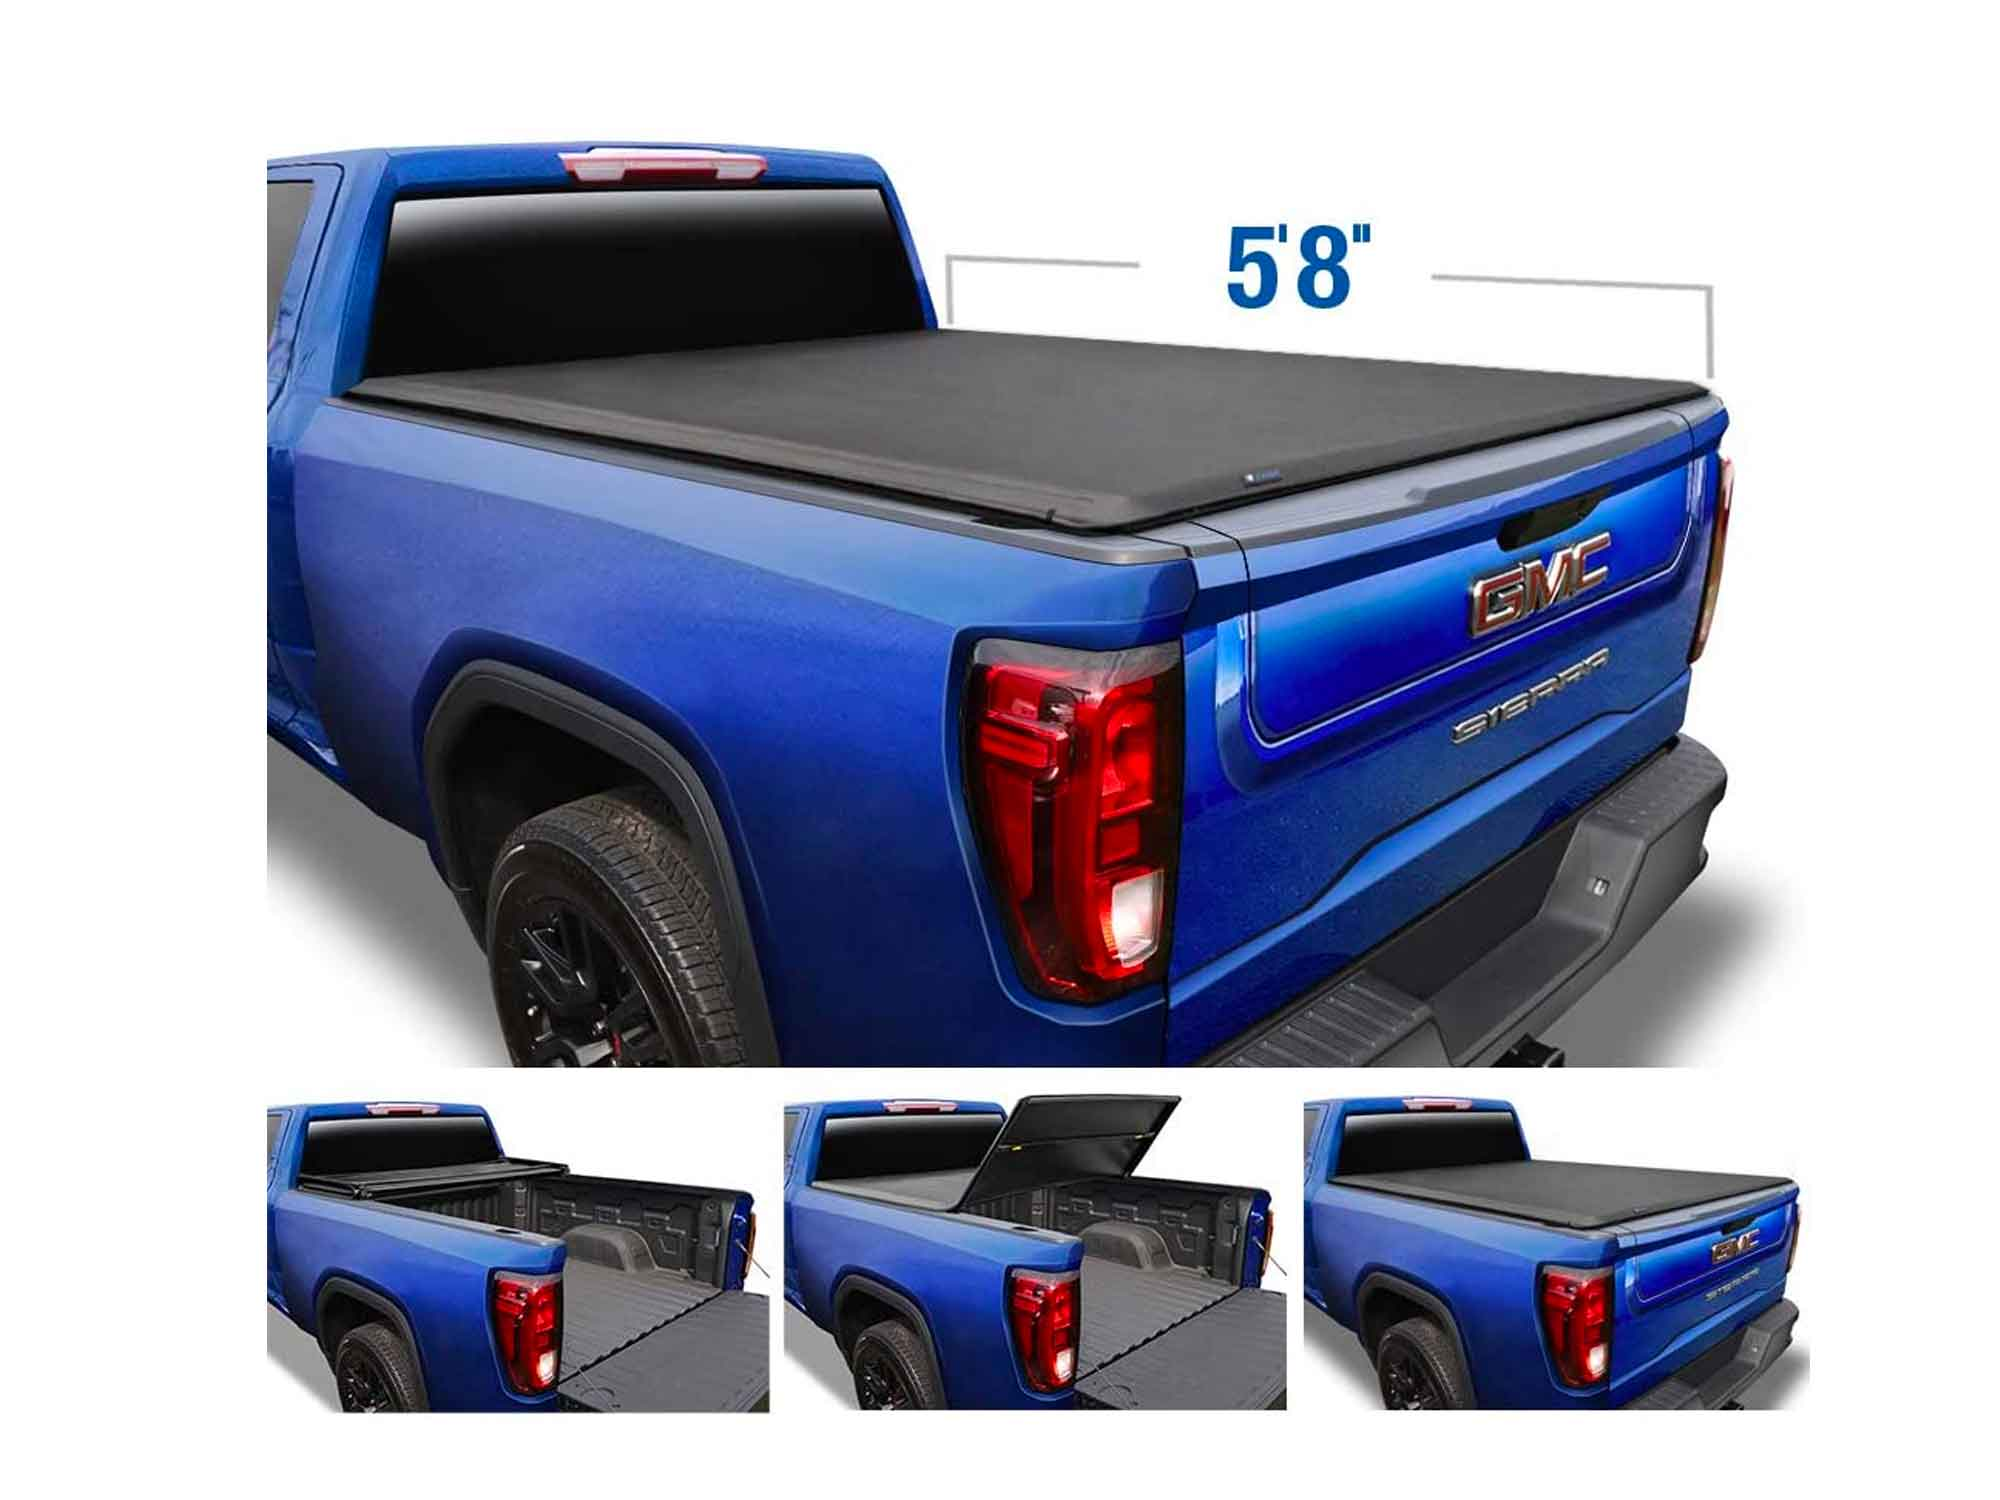 Tyger Auto T3 Soft Tri-Fold Truck Bed Tonneau Cover Compatible with 2019-2021 Chevy Silverado/GMC Sierra 1500 New Body   5'8